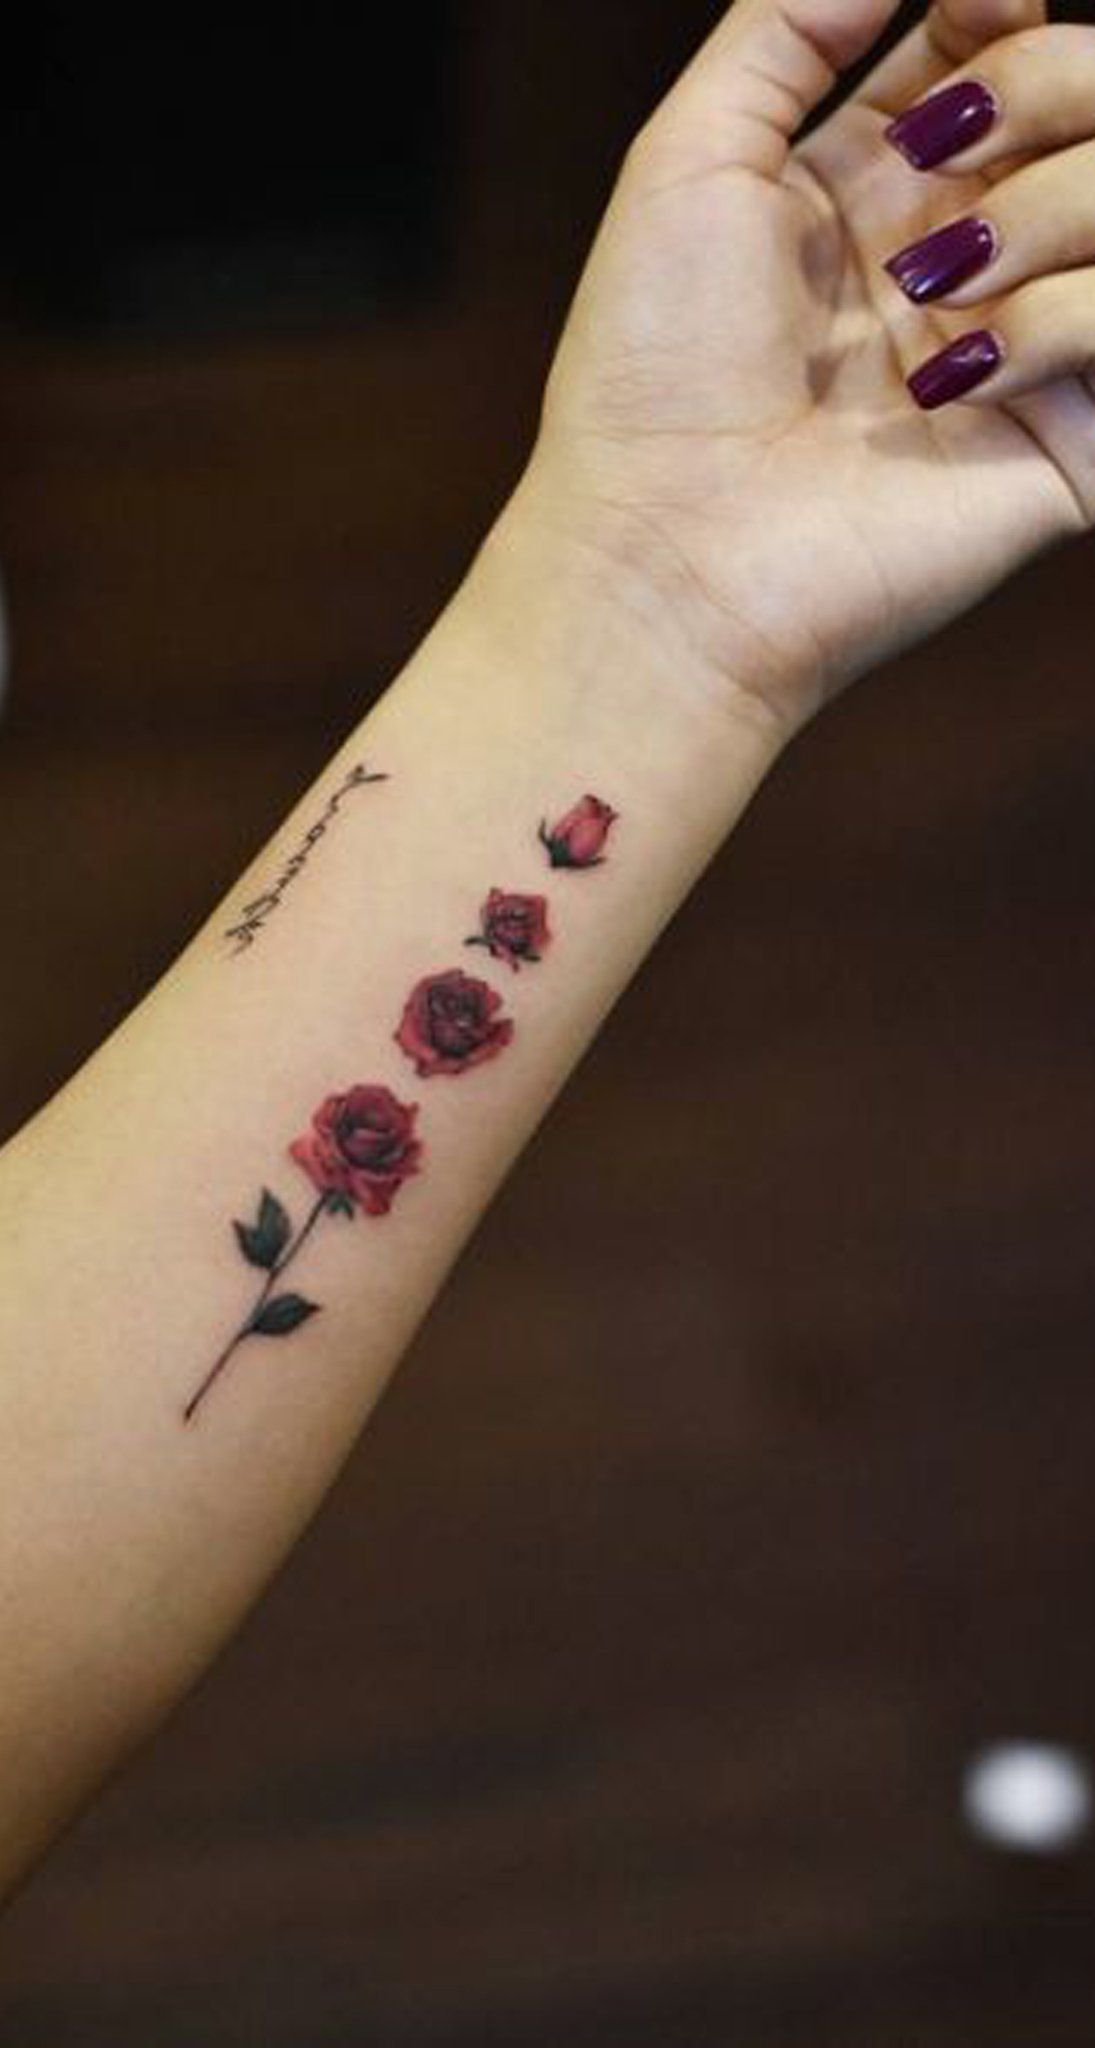 Unique Rose Arm Tattoo Ideas For Teenagers Cool Special Floral Flower Watercolor Forearm Tat Www With Images Rose Tattoo On Arm Tattoo Designs For Women Wrist Tattoos